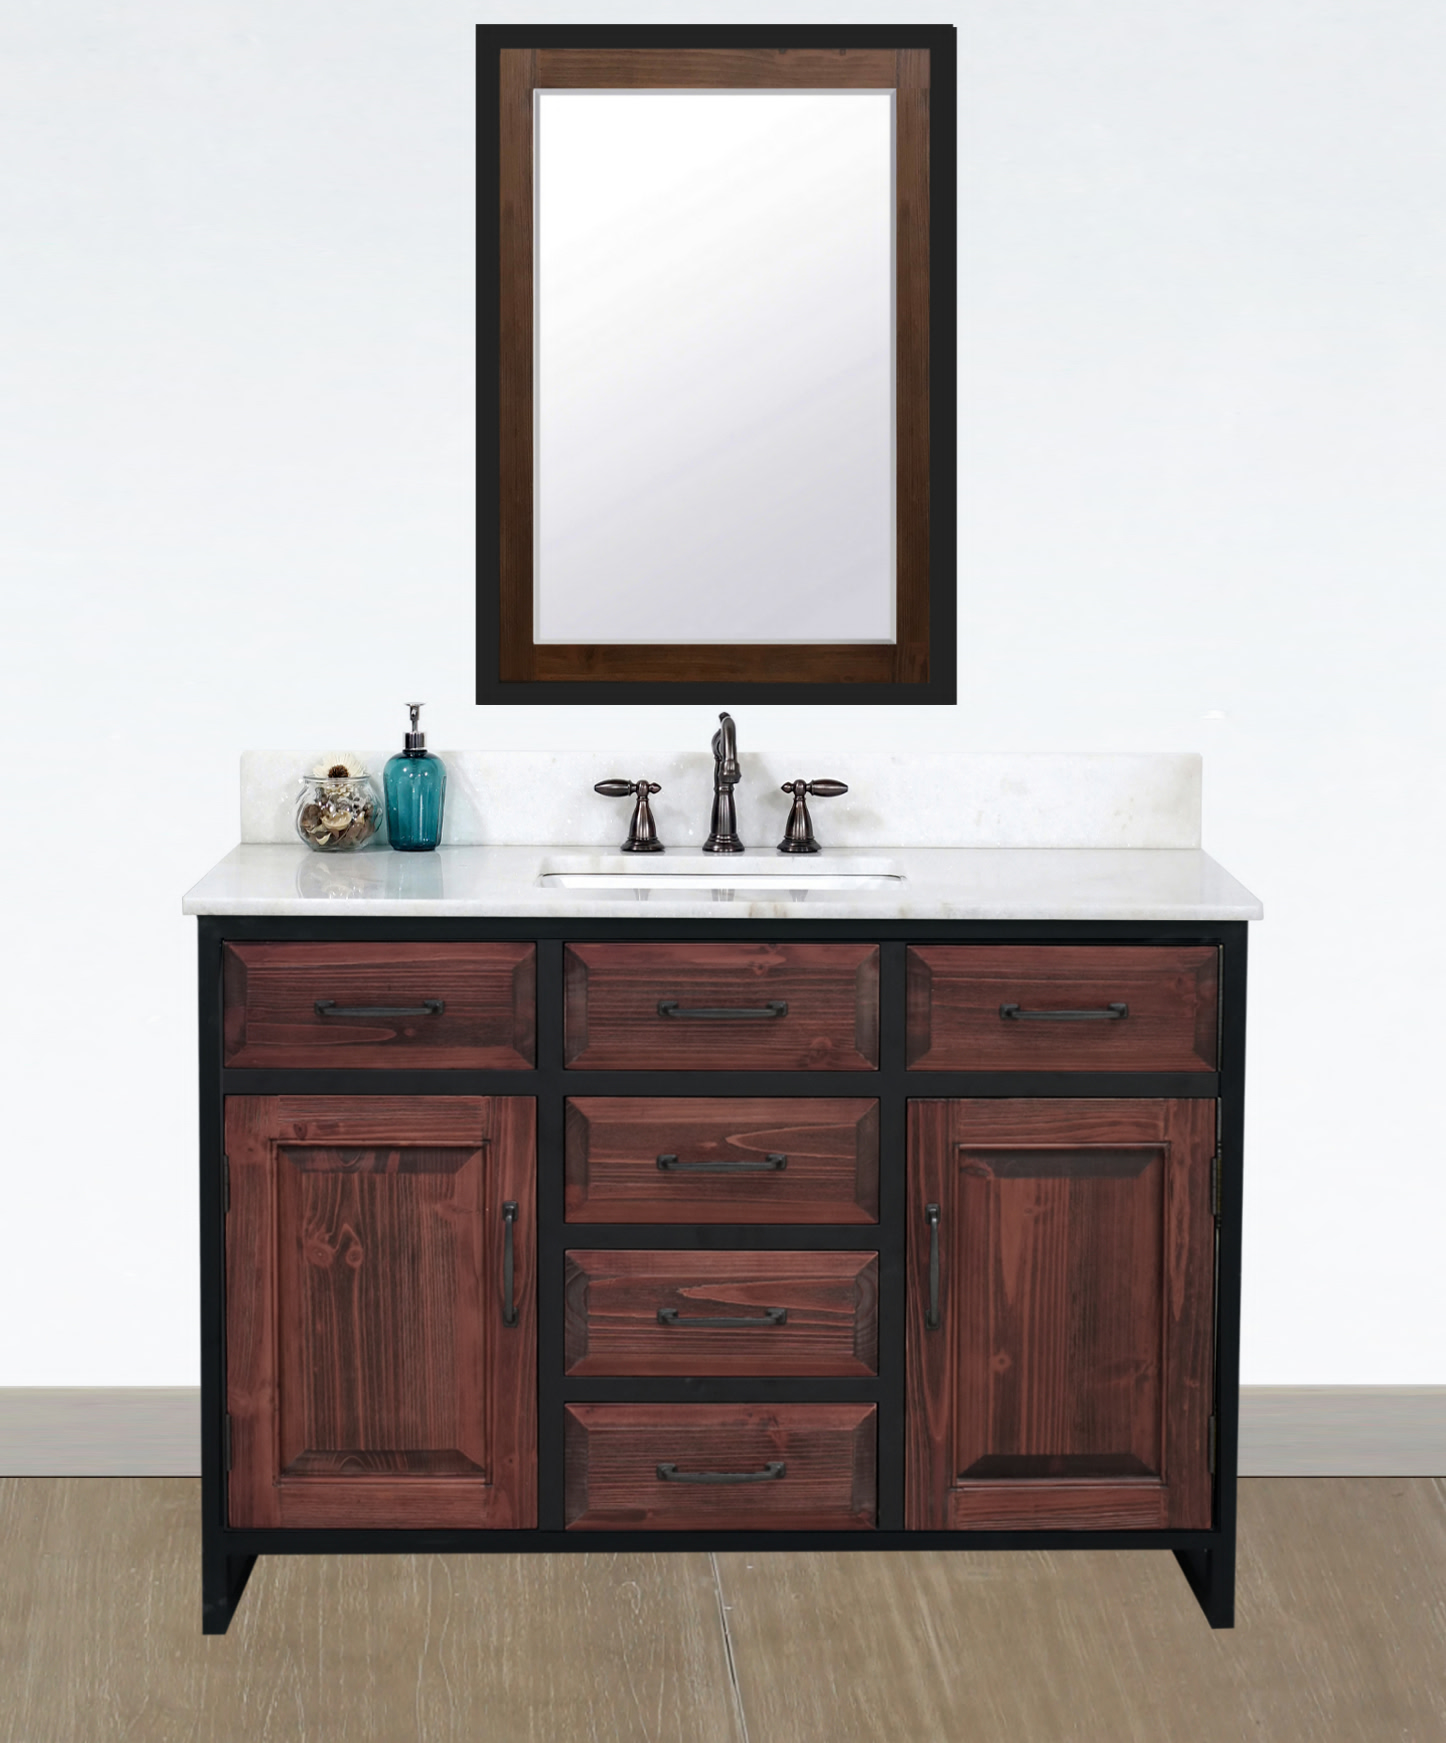 """48"""" Rustic Solid Fir Single Sink with Iron Frame Vanity in Brown Driftwood - No Faucet with Countertop Options"""